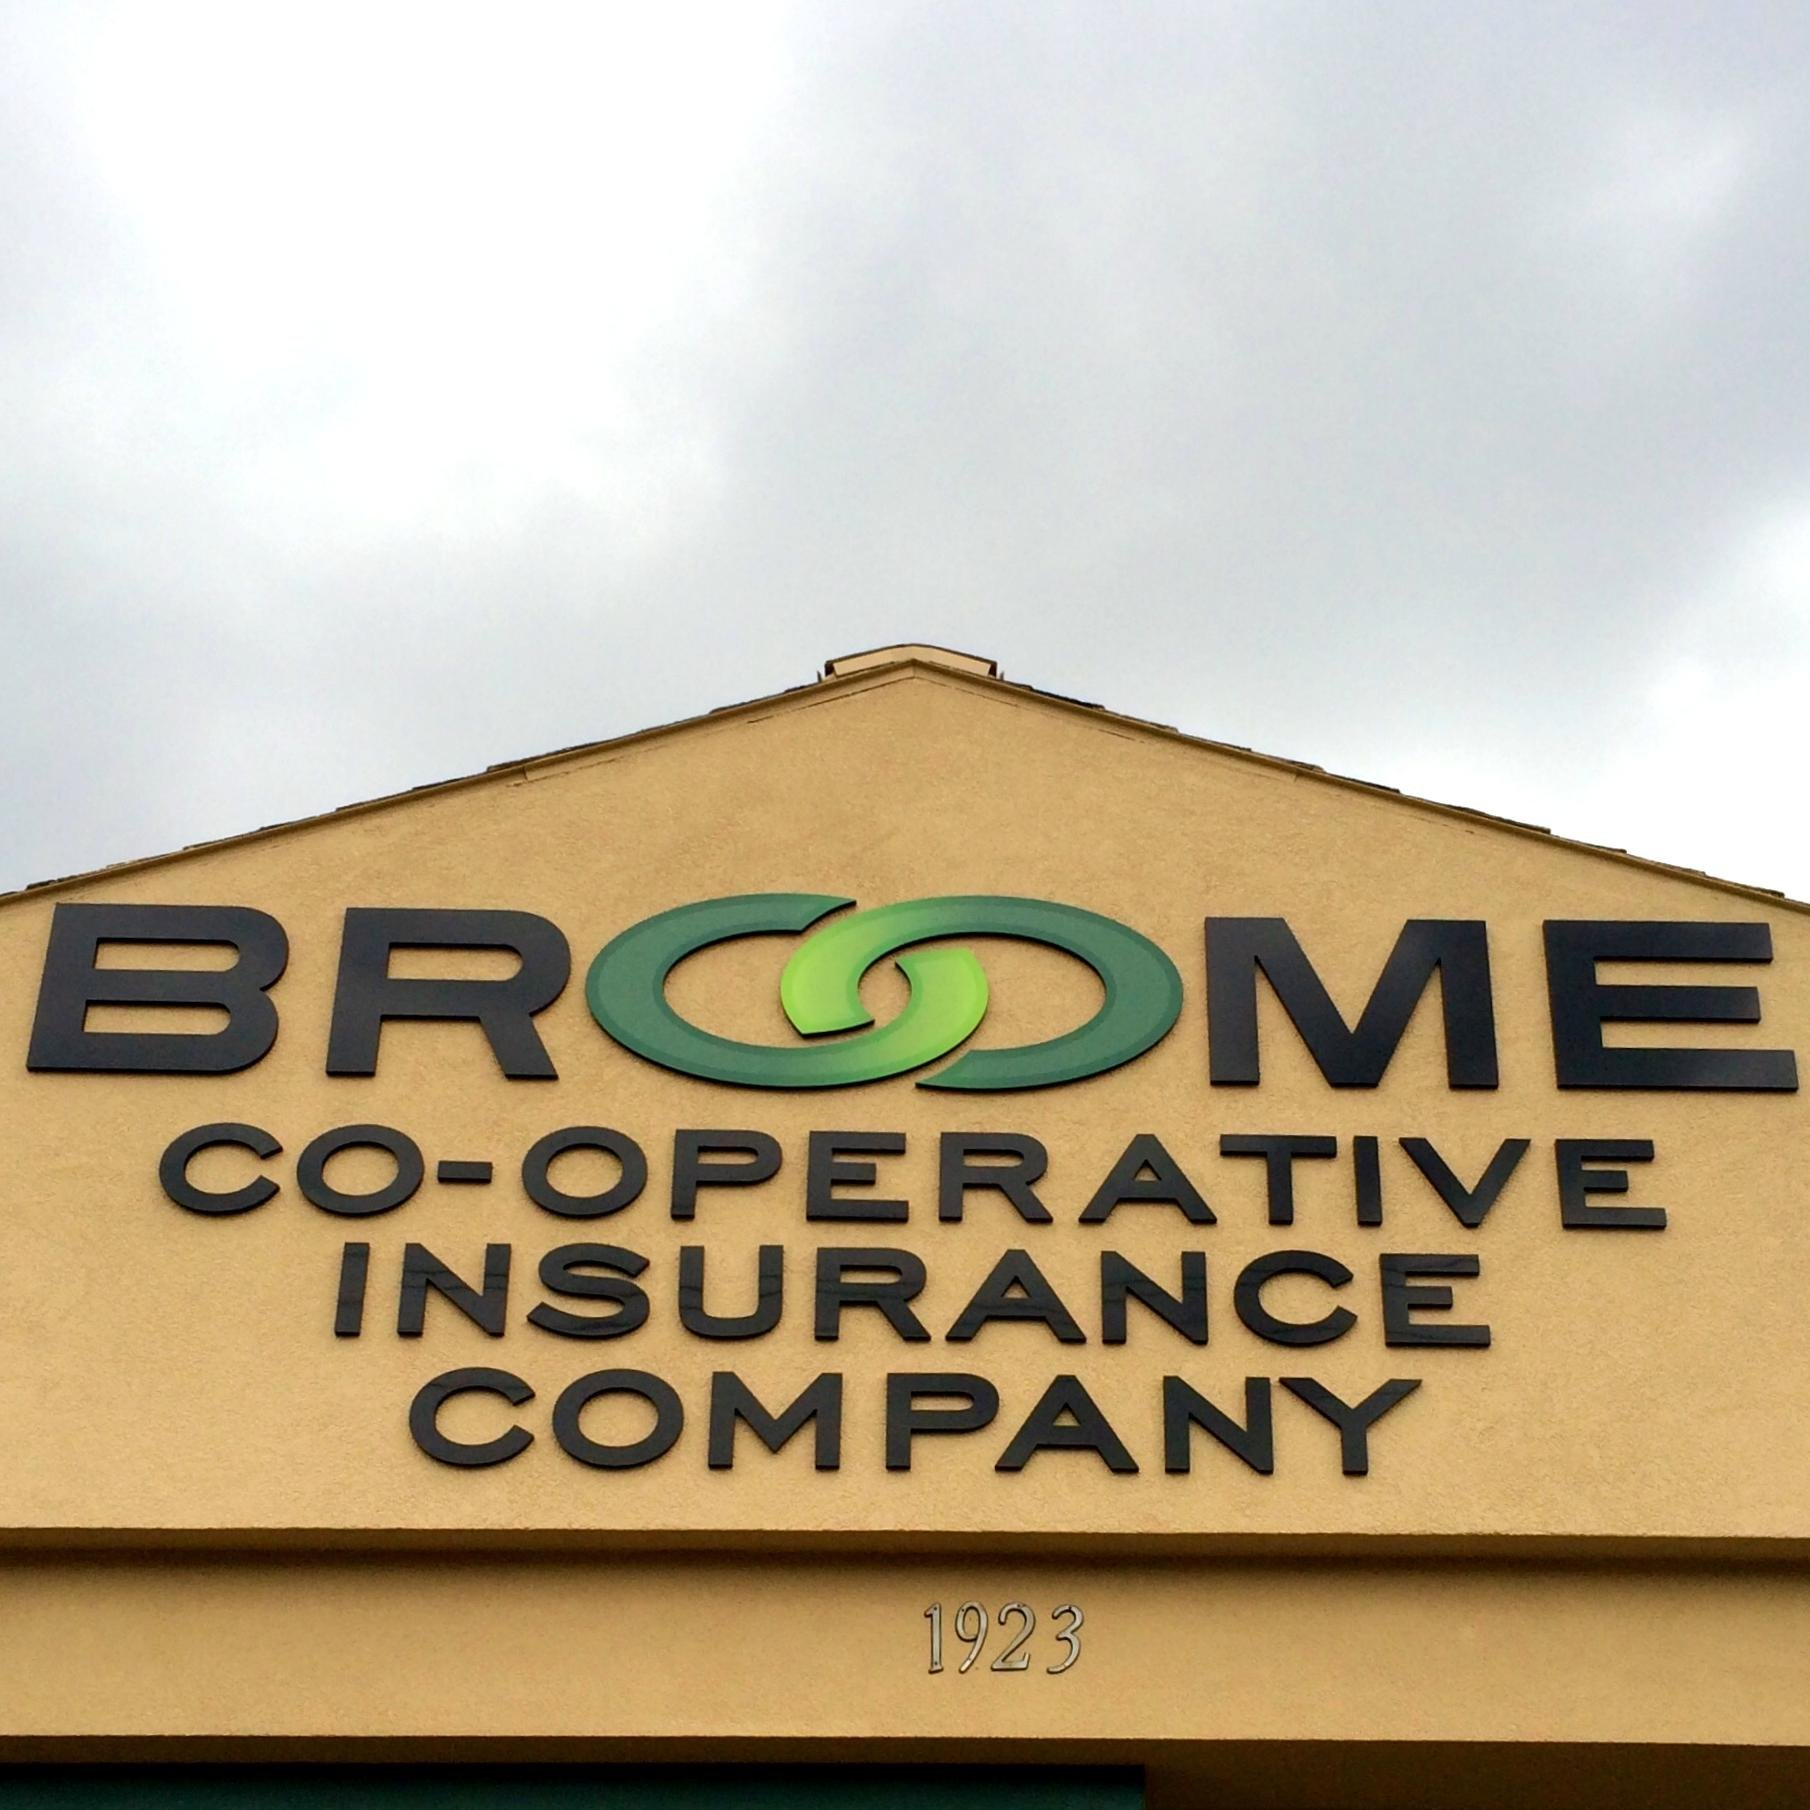 Broome Cooperative (@bcicny)  Twitter. Colorado Traffic Accidents Free Share Screen. Restaurant Supply Long Island. Clinical Decision Support Software. Aventura Animal Hospital Bard Graduate Center. Bargain Bail Bonds Amarillo Home Break Ins. Milwaukee Injury Lawyer Real Estate Financing. Fl Workers Compensation Bigham Taylor Roofing. Cheap Insurance For Young People